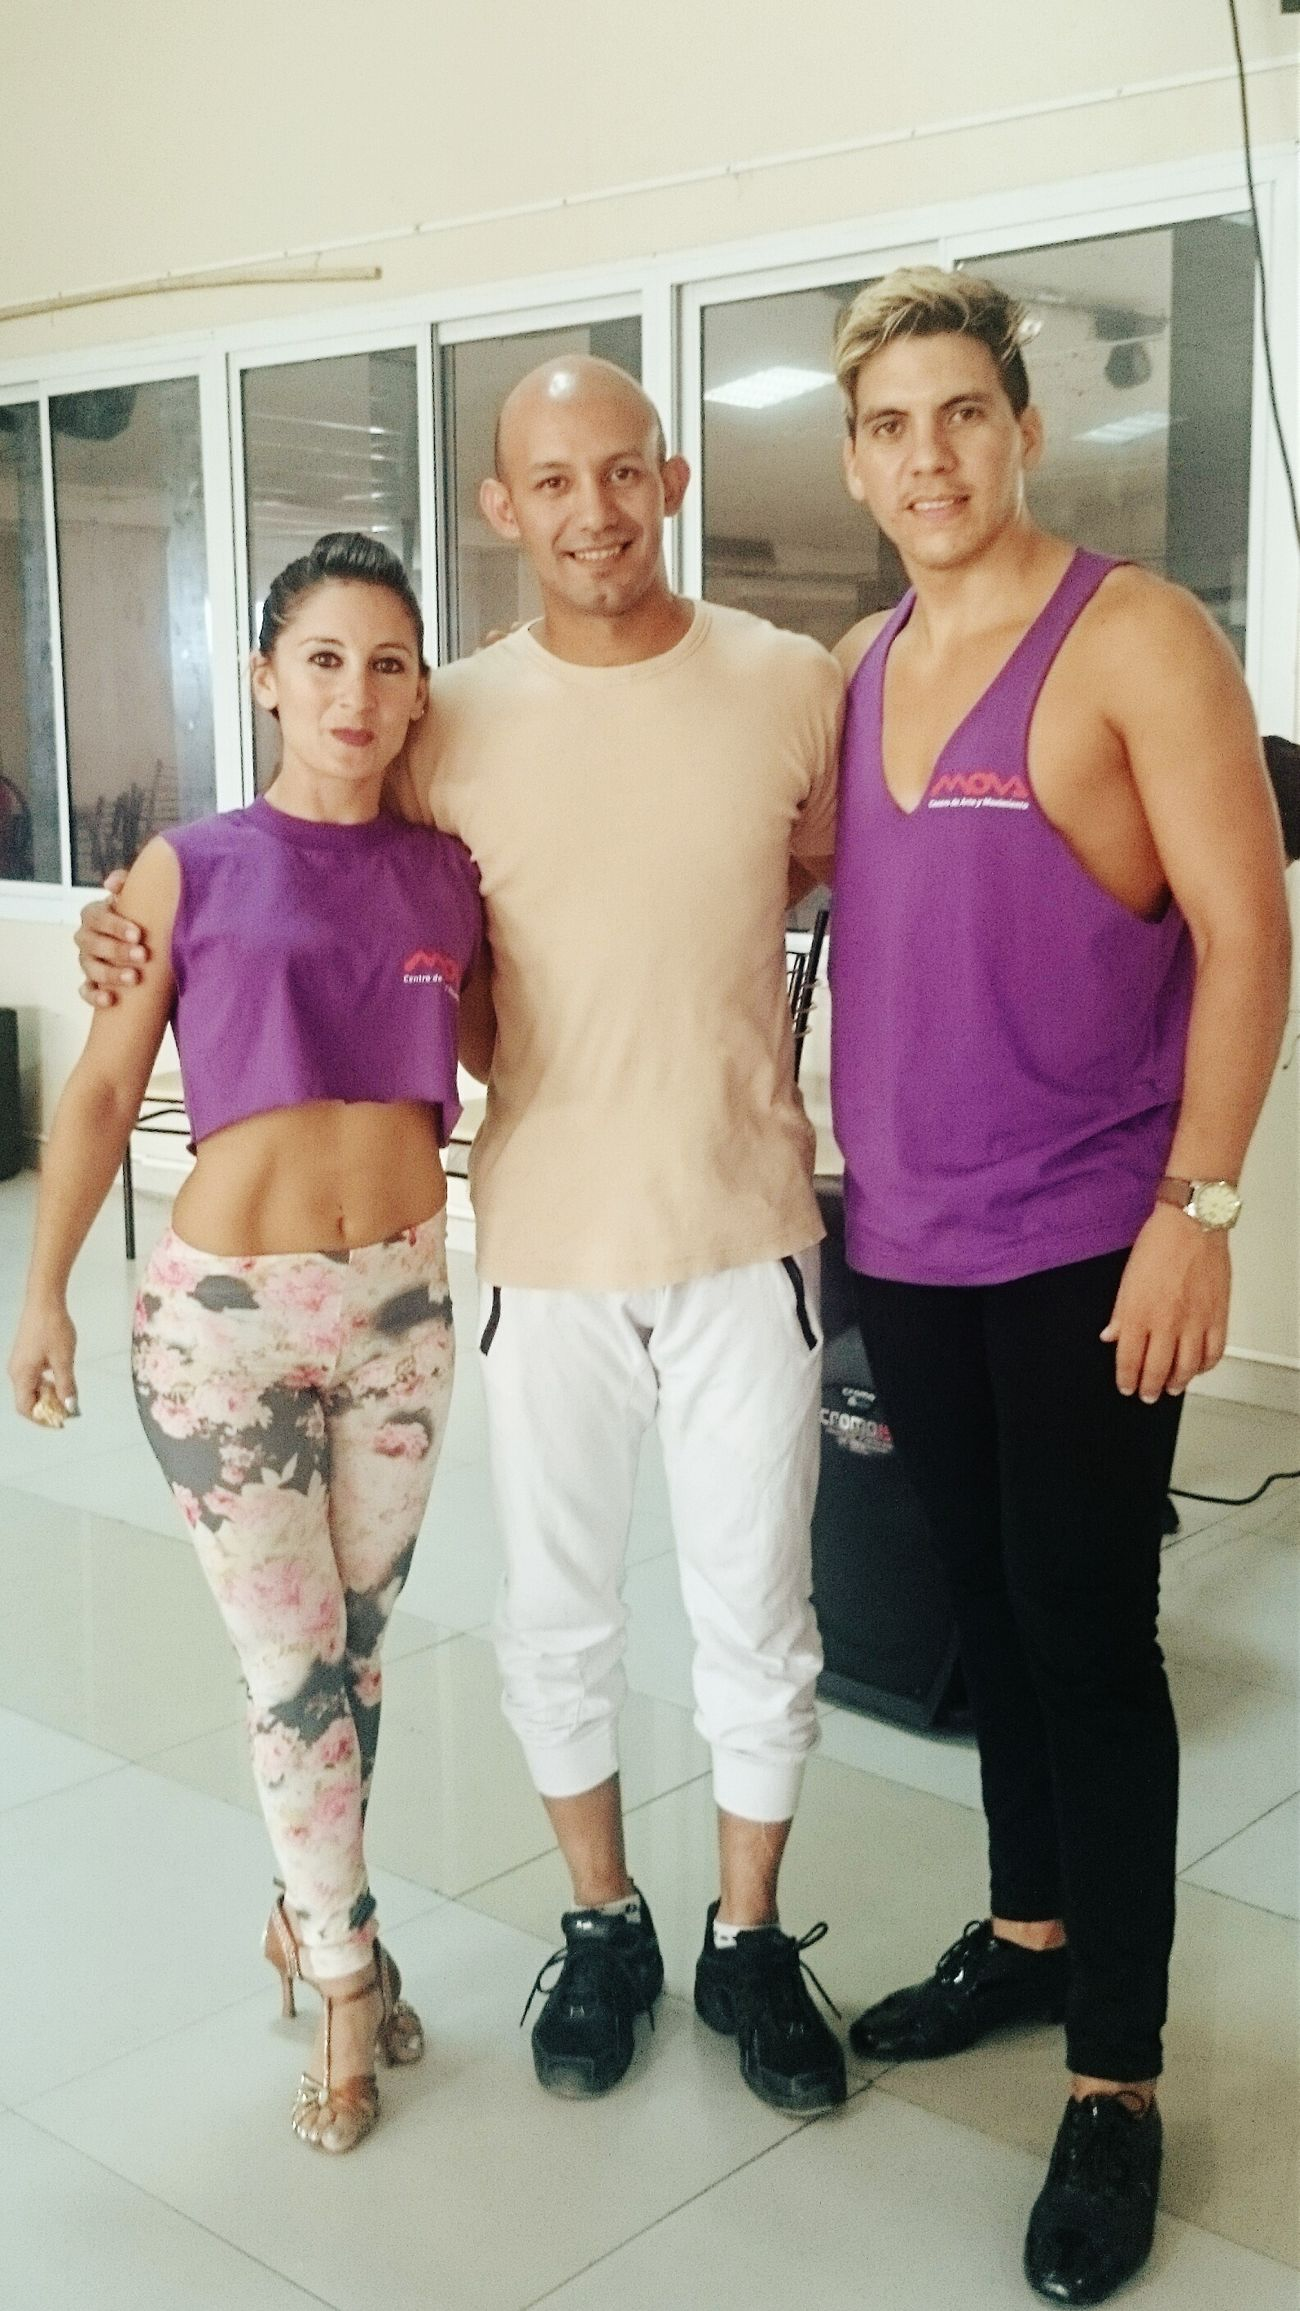 With The Champions Master Class of Bachata/salsa in Formosa